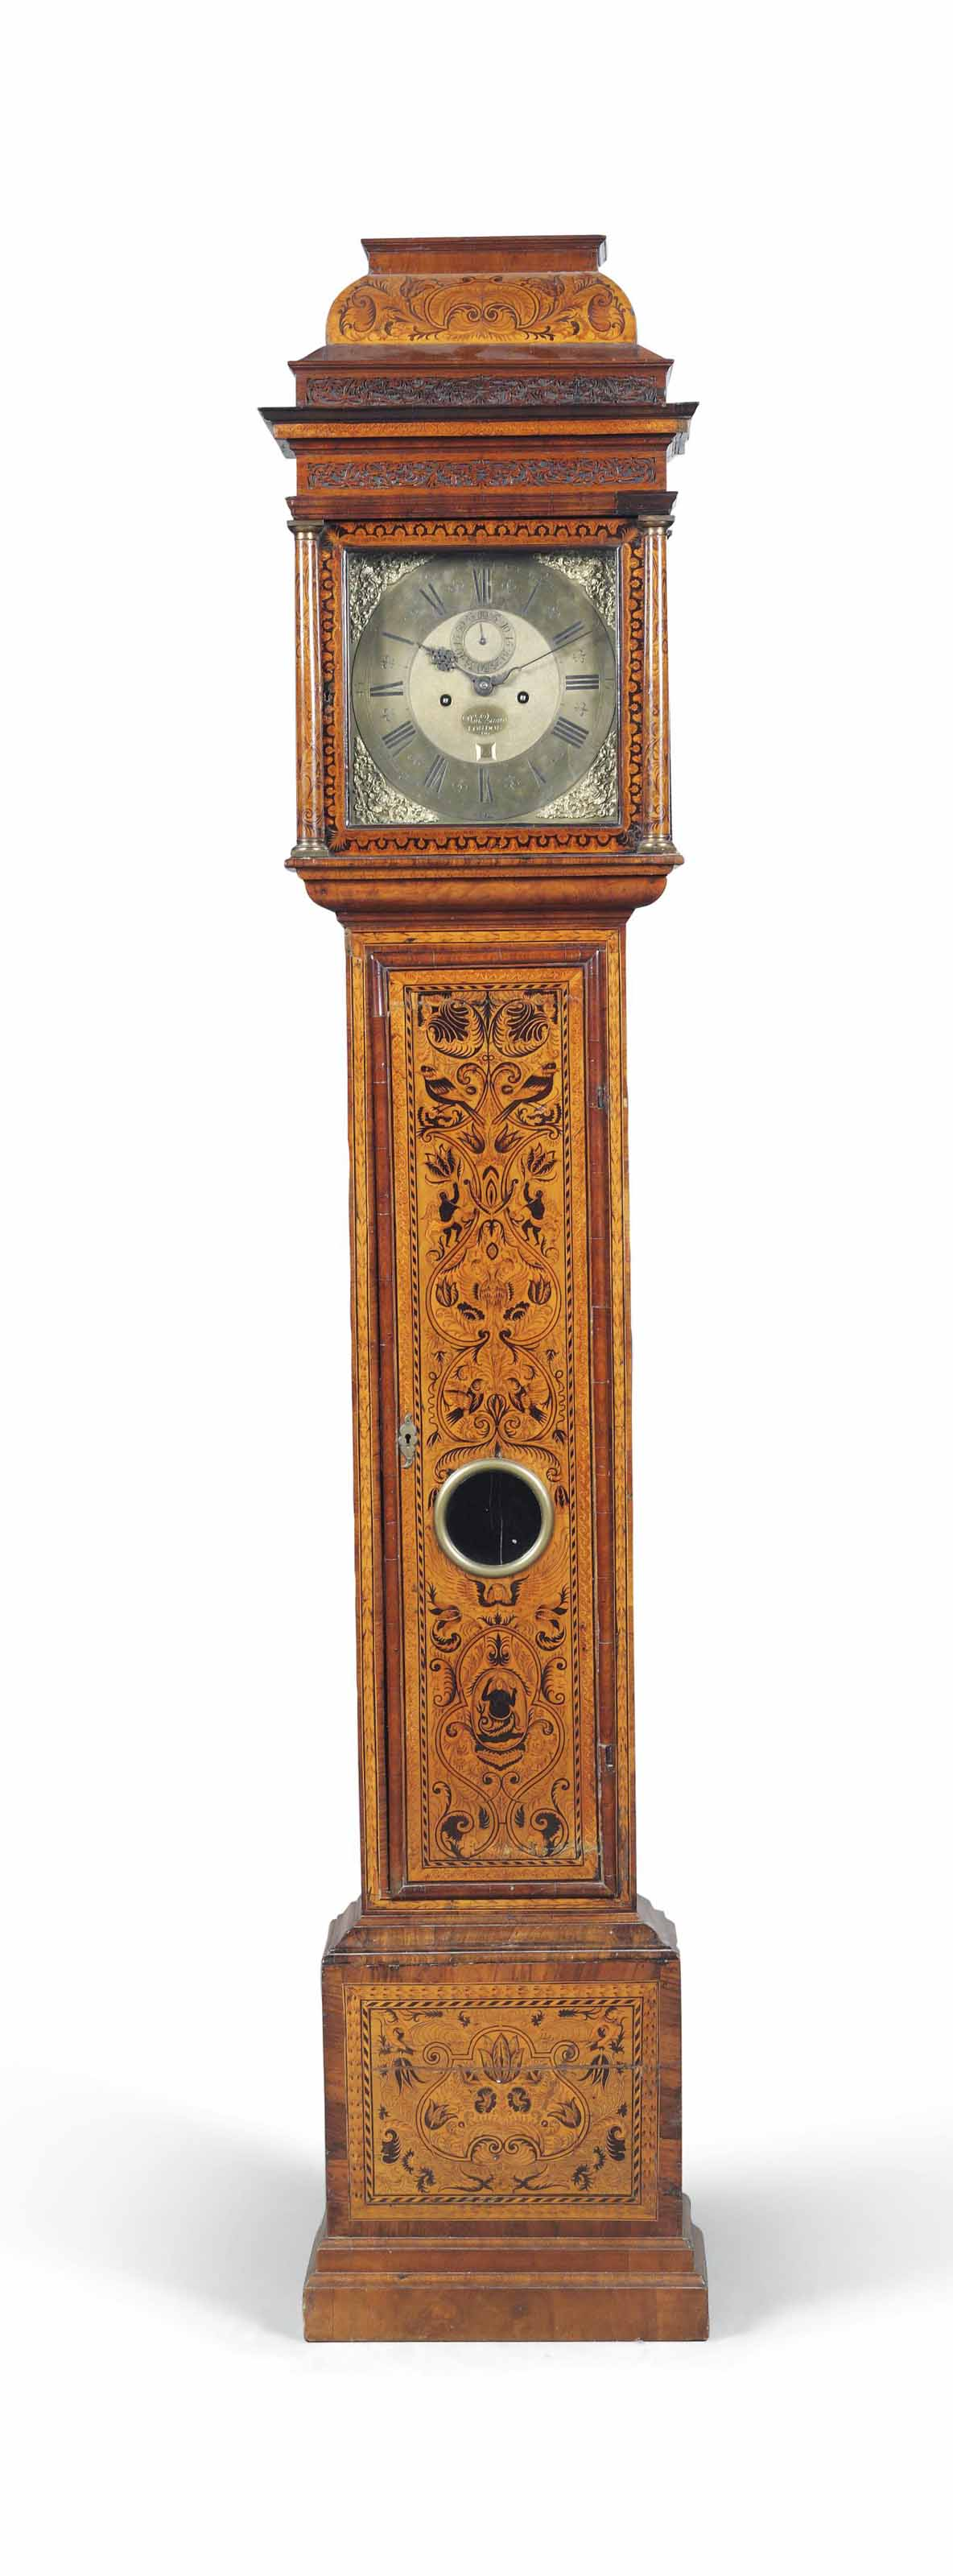 A QUEEN ANNE WALNUT AND MARQUETRY STRIKING LONGCASE CLOCK